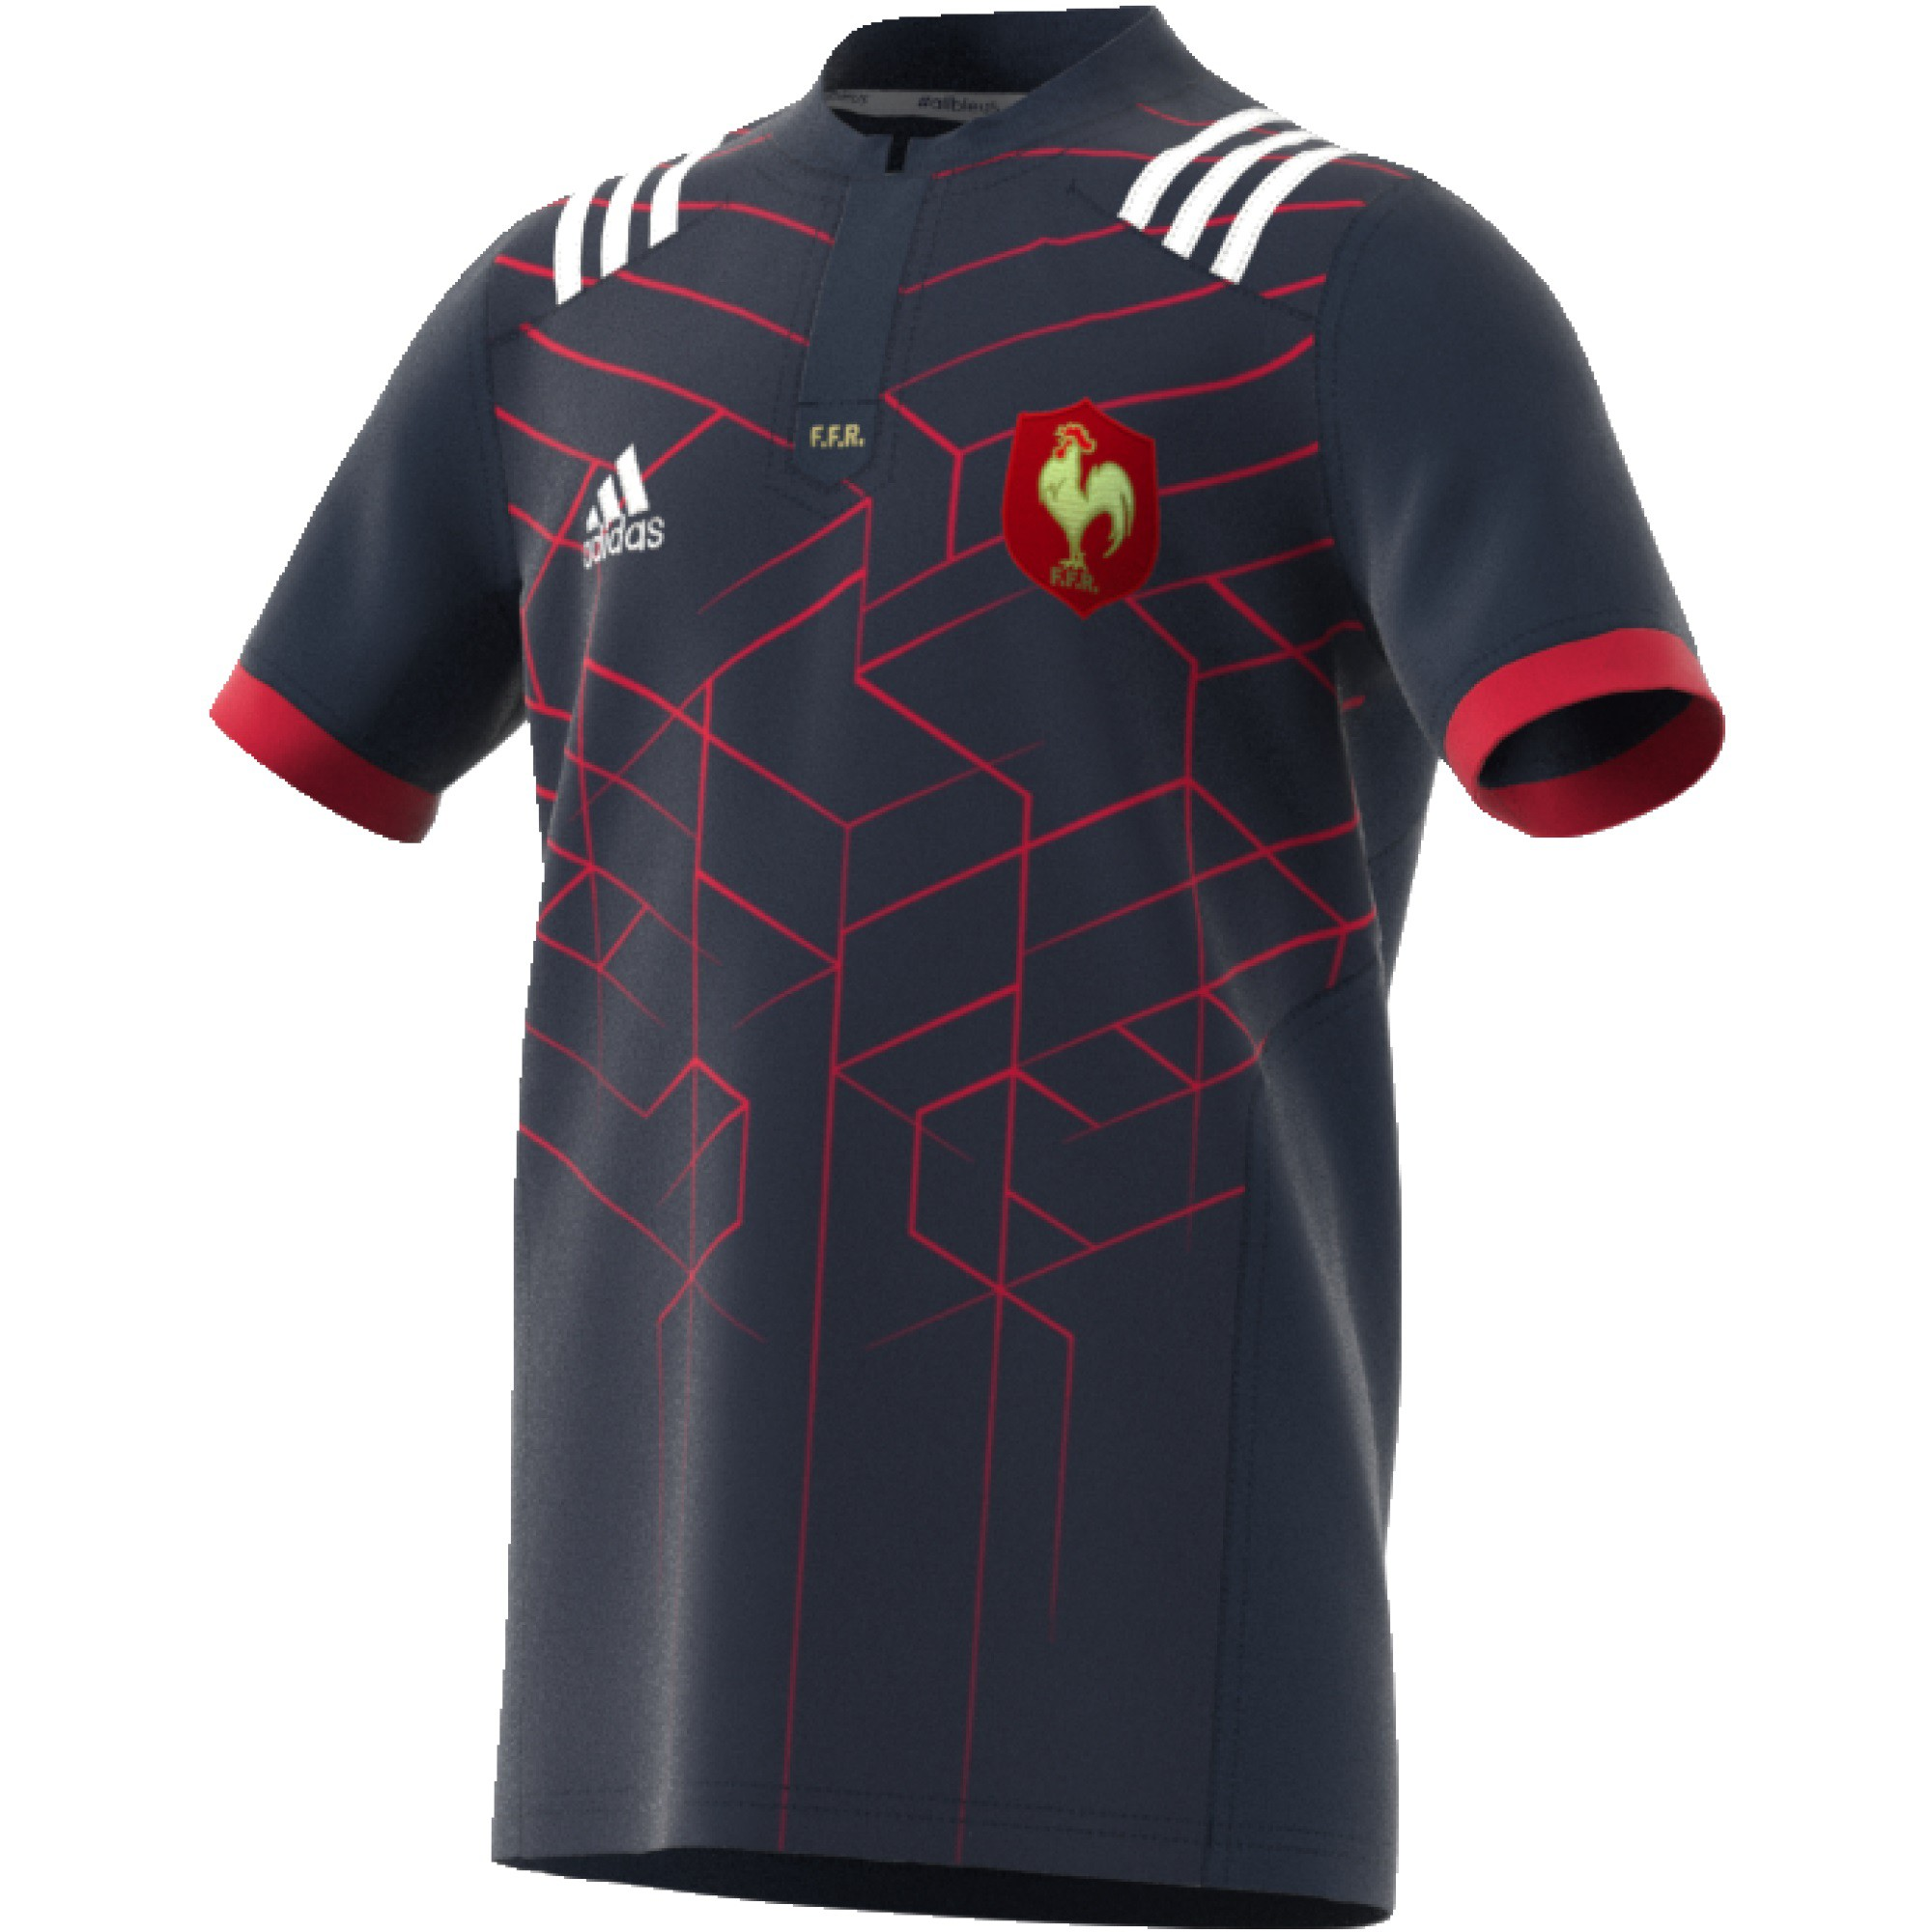 ADIDAS FFR RUGBY MAILLOT DOMICILE JUNIOR 2016/2017